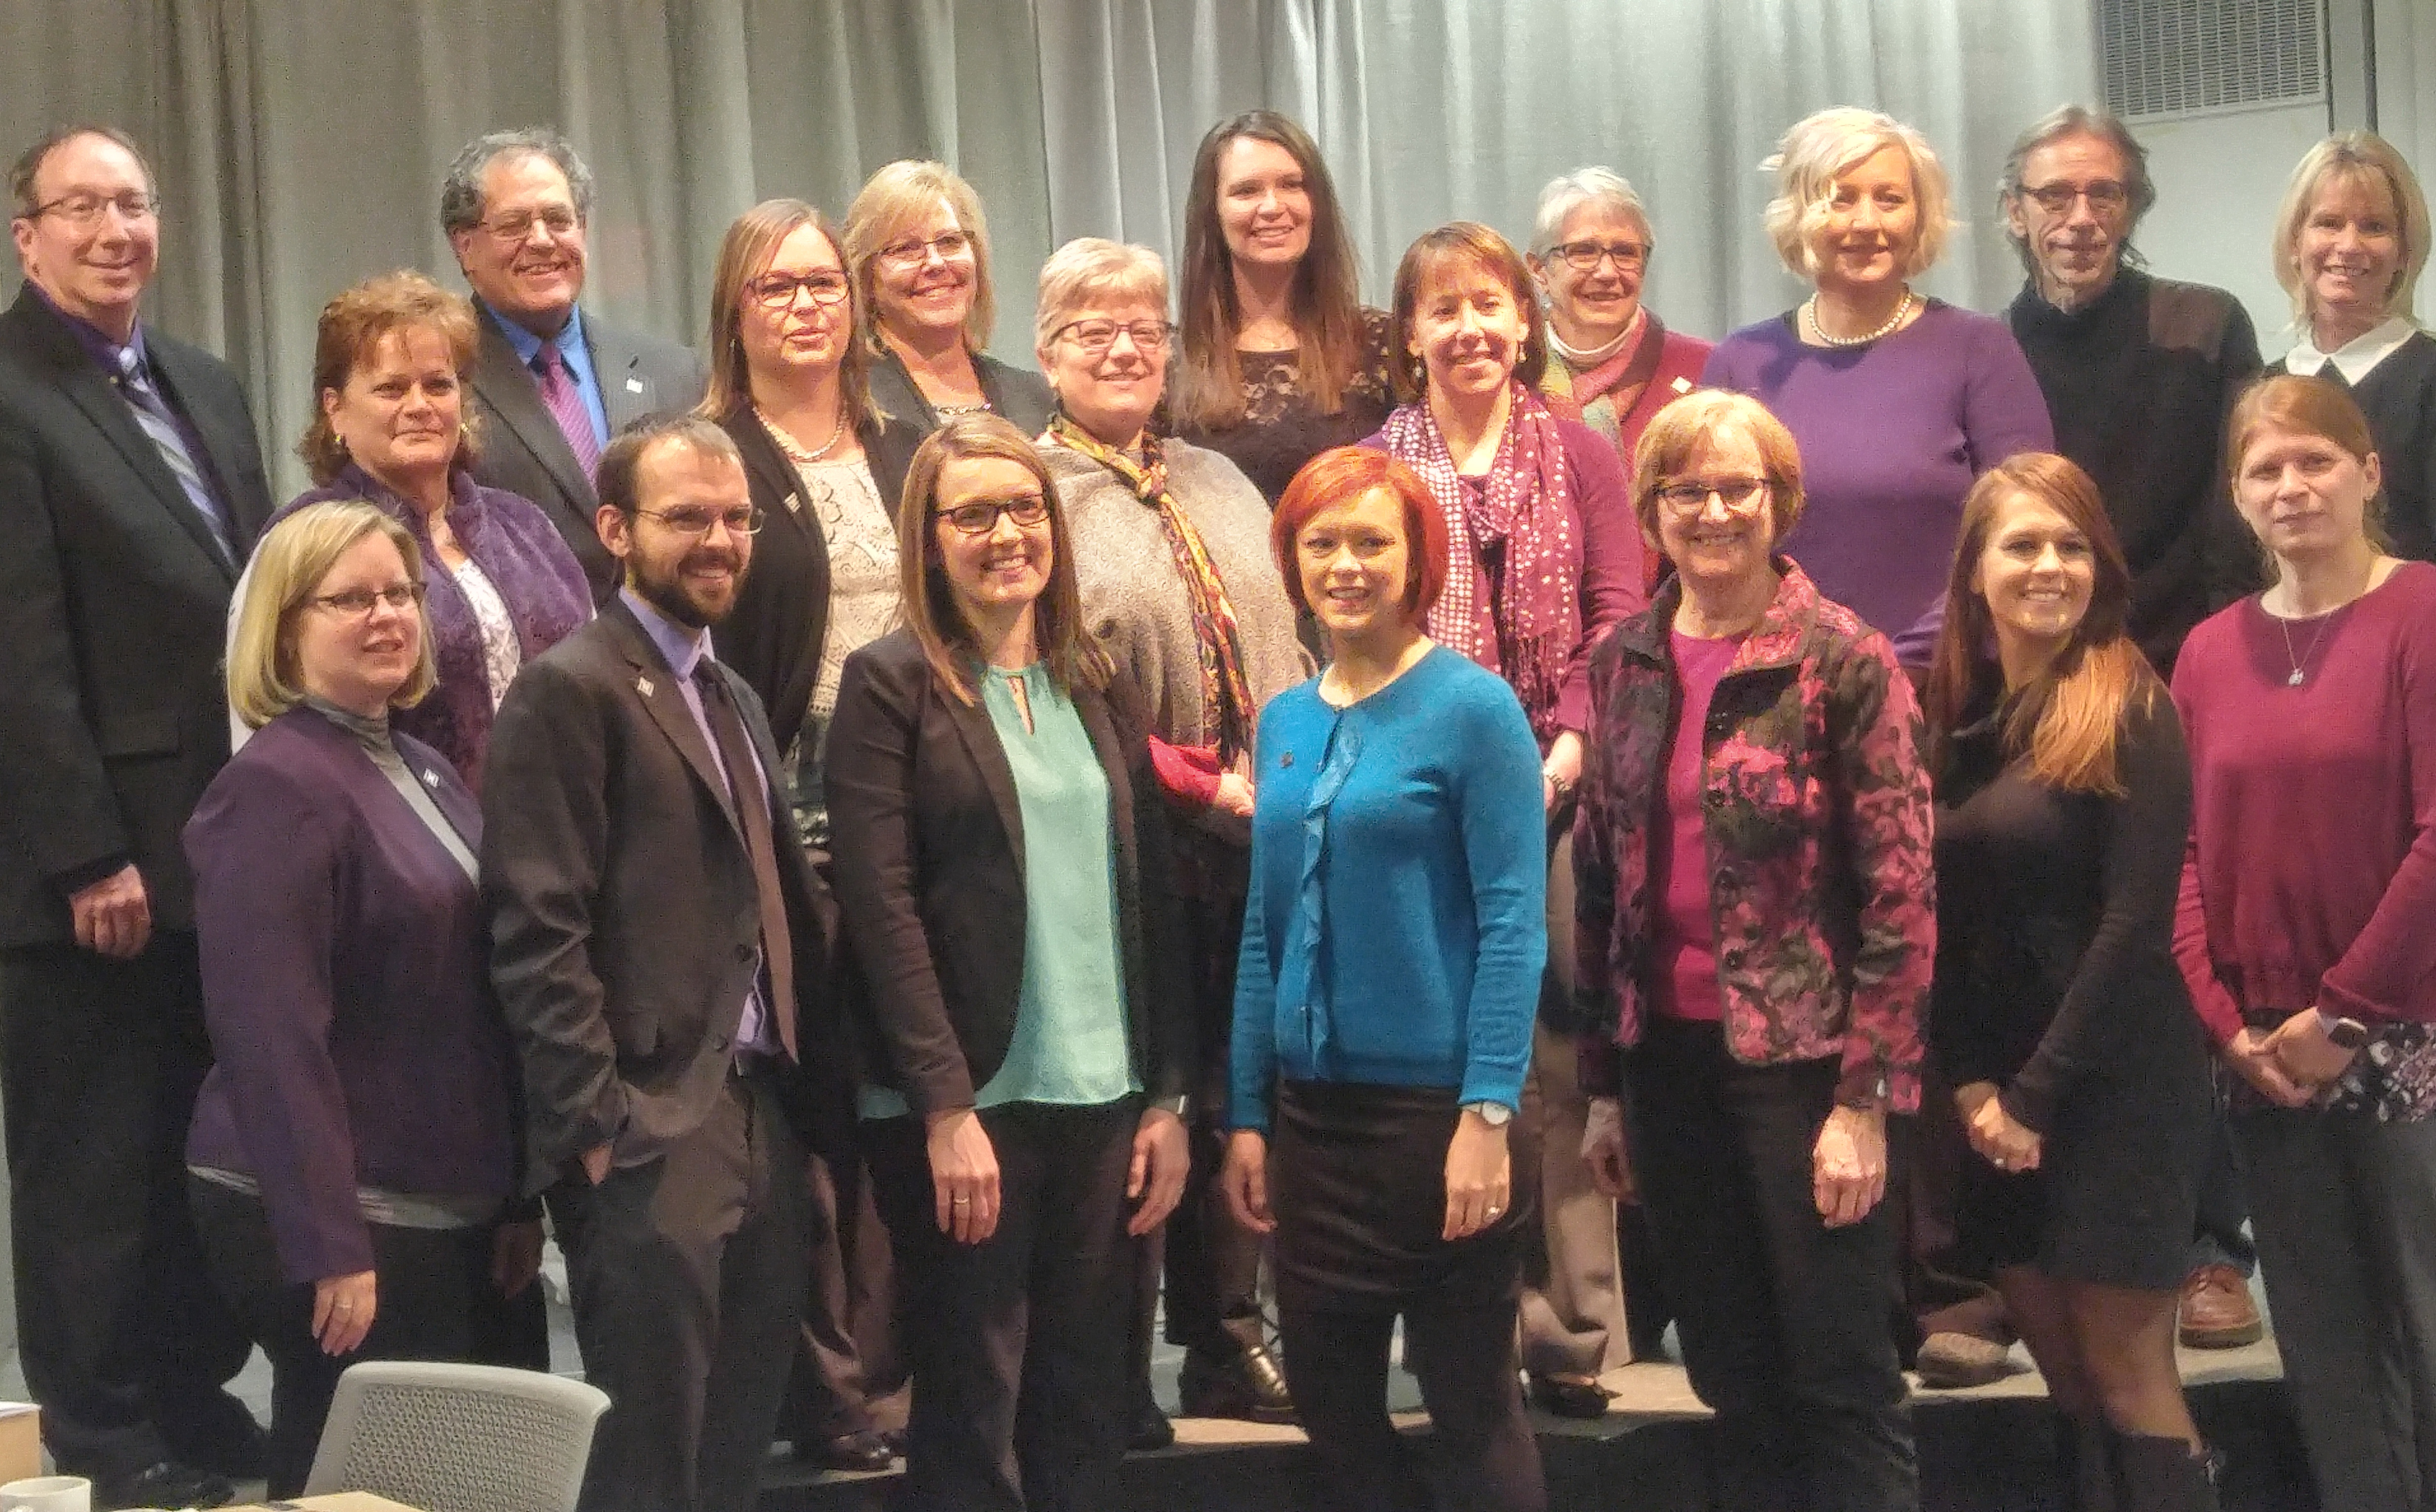 Long-term Bluffton University employees